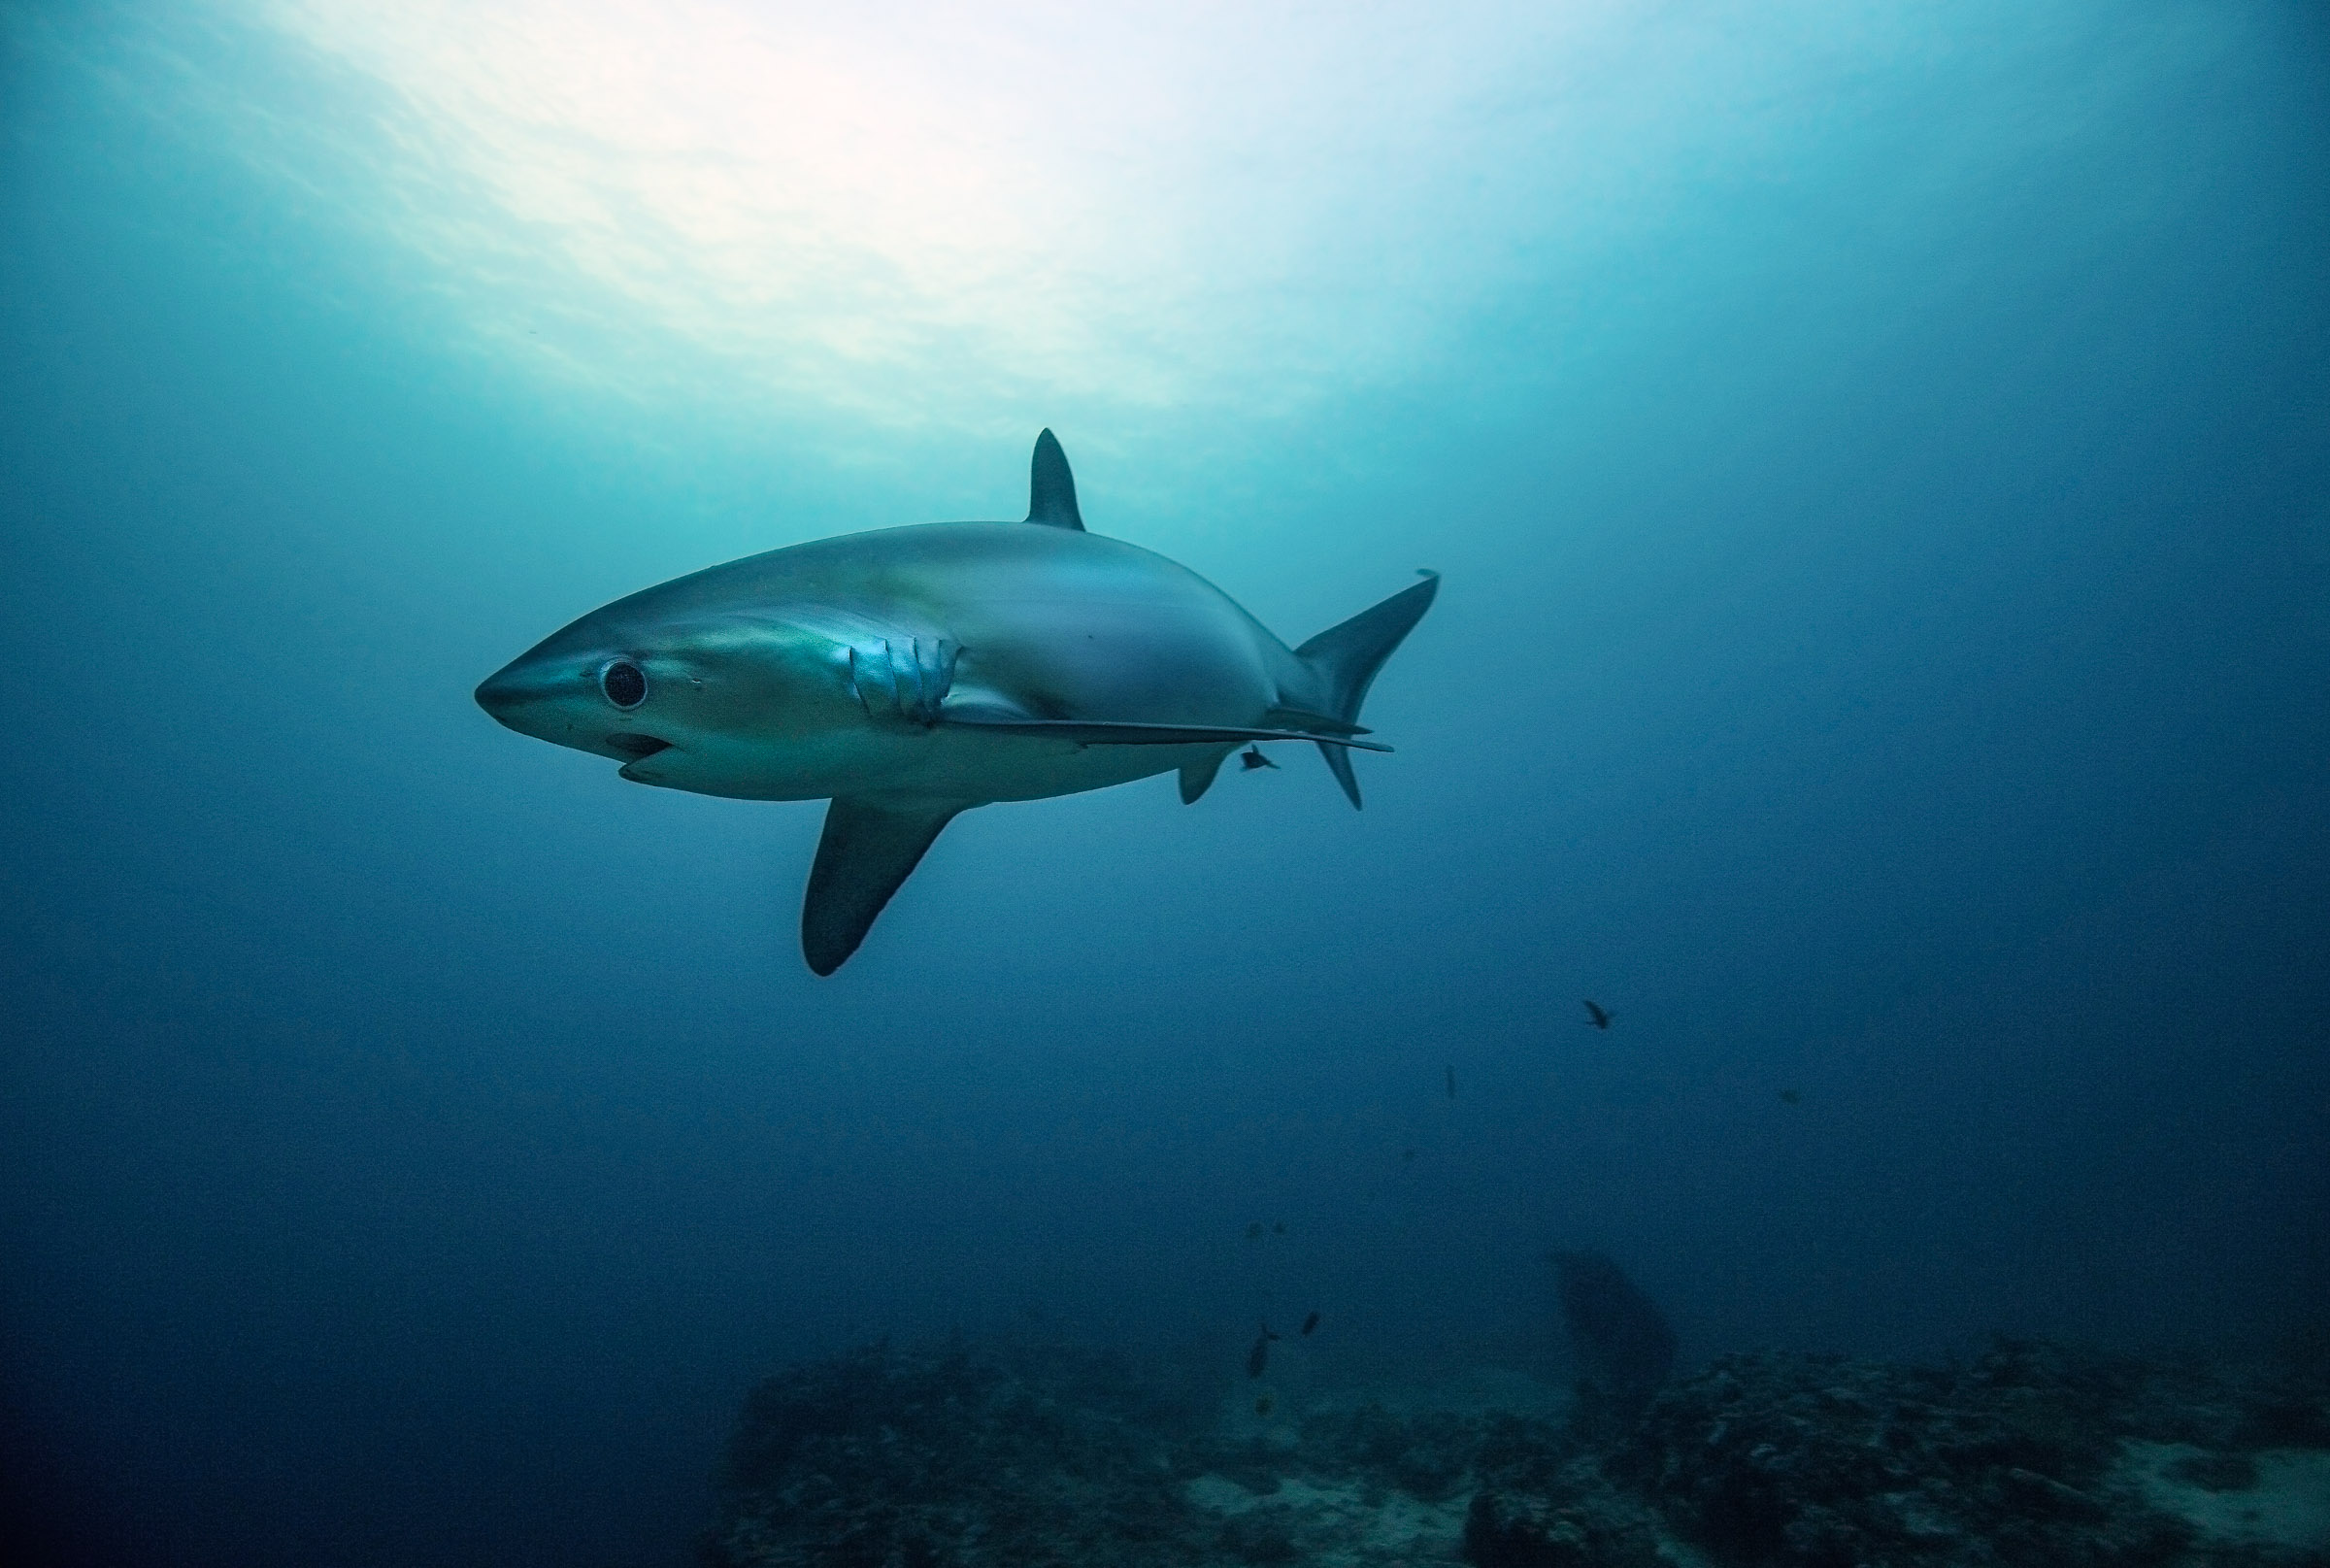 philippines-malapascua-diving-tresher-shark-3